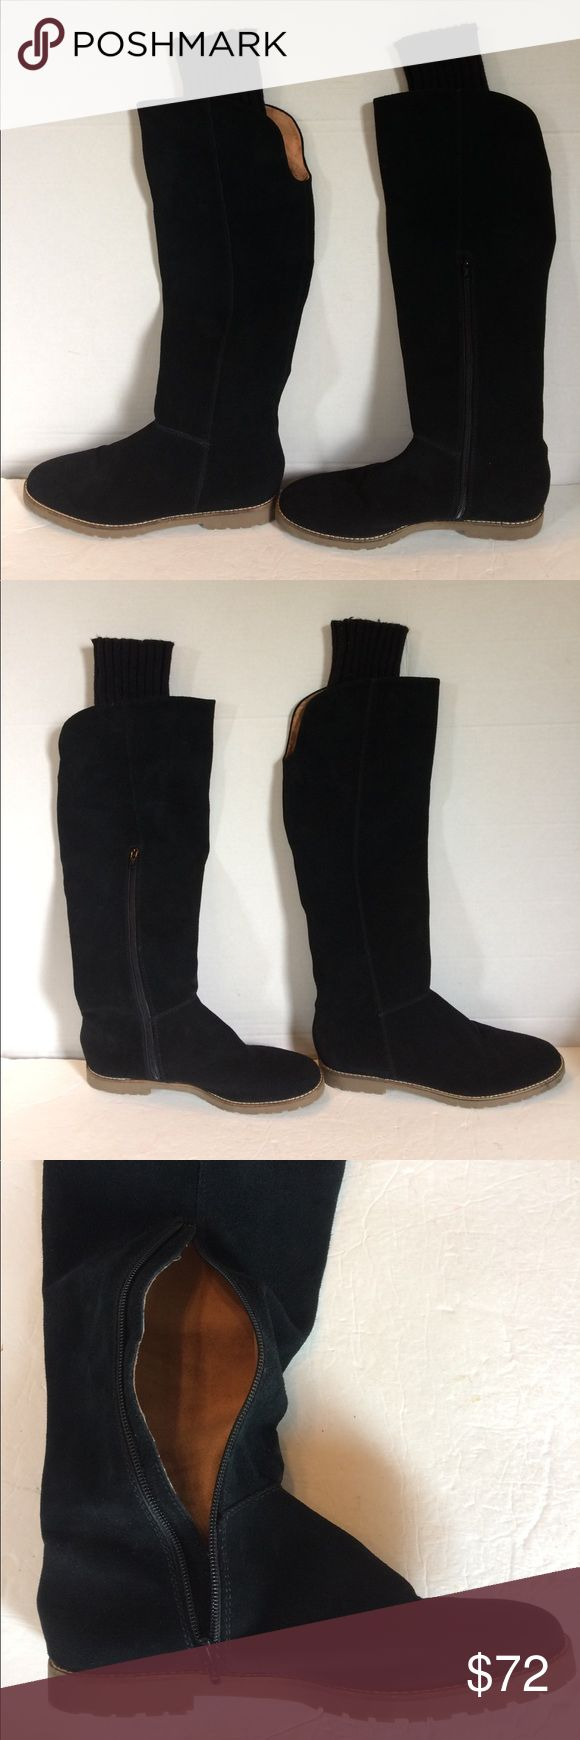 """Corsica Como Black Suede Mid Calf Boots Extremely nice pair of black Suede Mid Calf Boots. They feature; leather leather uppers, leather/textile lining and man made soles. Elastic sock at the top and lower inside zipper. Total height is 18.5"""" and top circumference is 17"""". Heel is 3/4"""". Overall Exceptional preowned condition. 8M Corso Como Shoes Ankle Boots & Booties"""